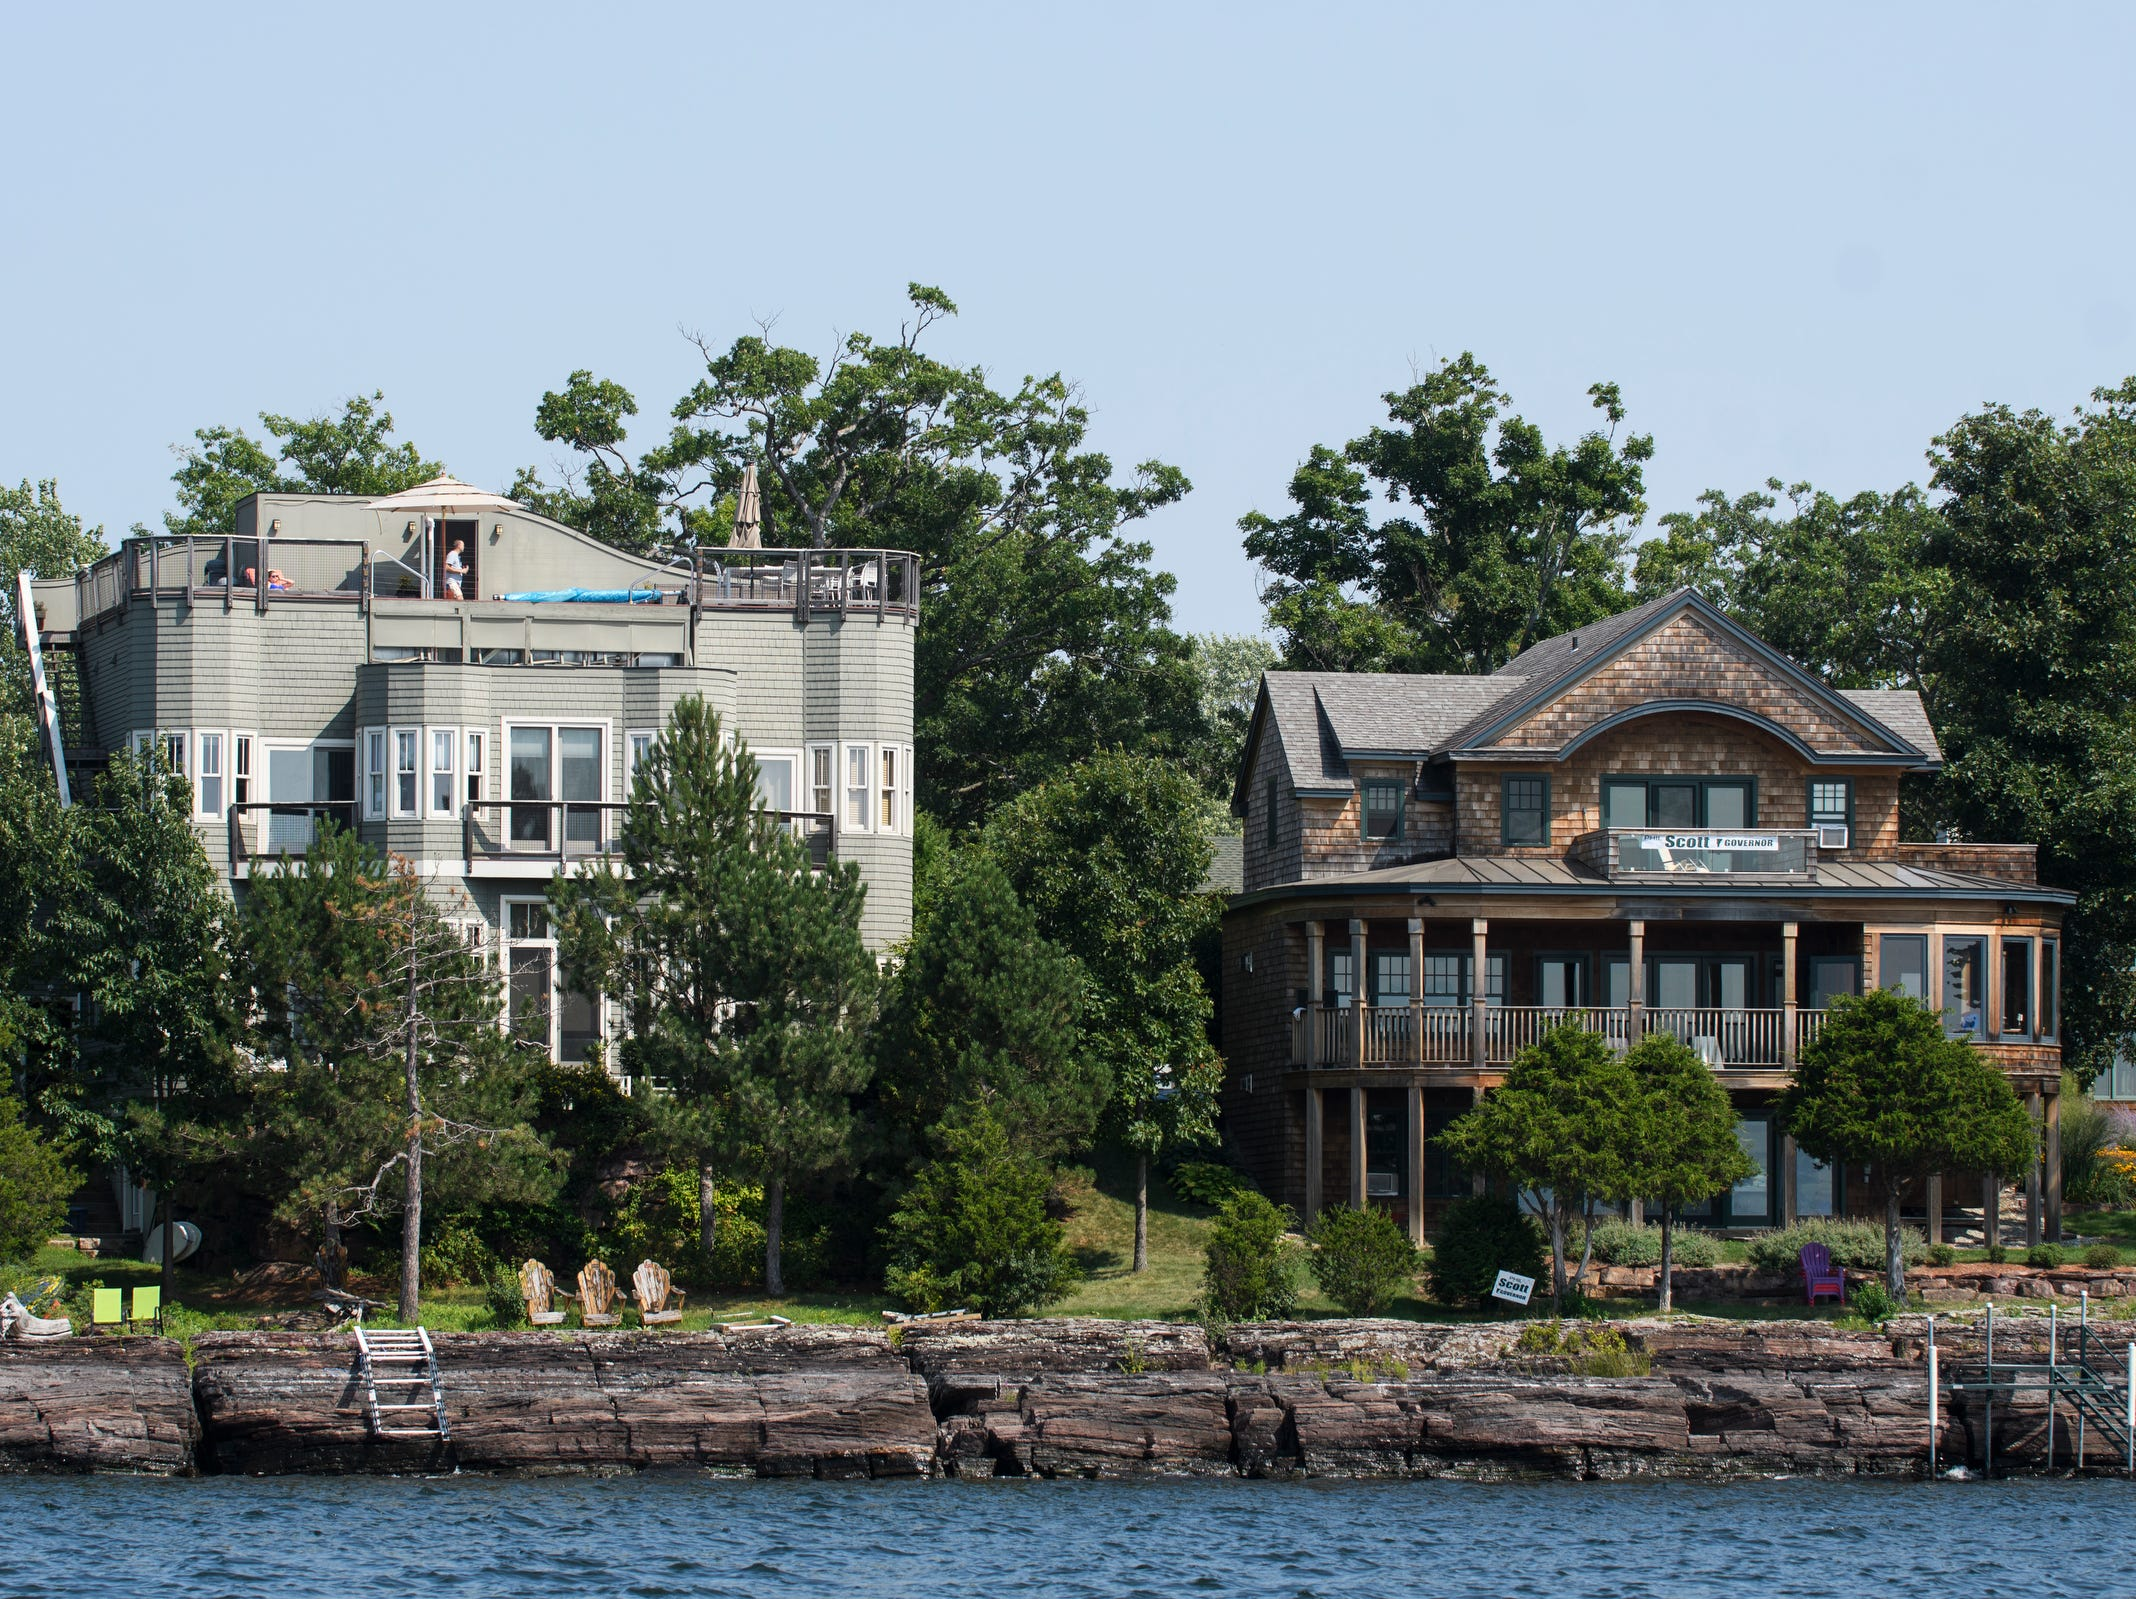 A house on the water during a tour of the waterfront real estate along the shores of Lake Champlain on Friday afternoon August 24, 2018 in Burlington.